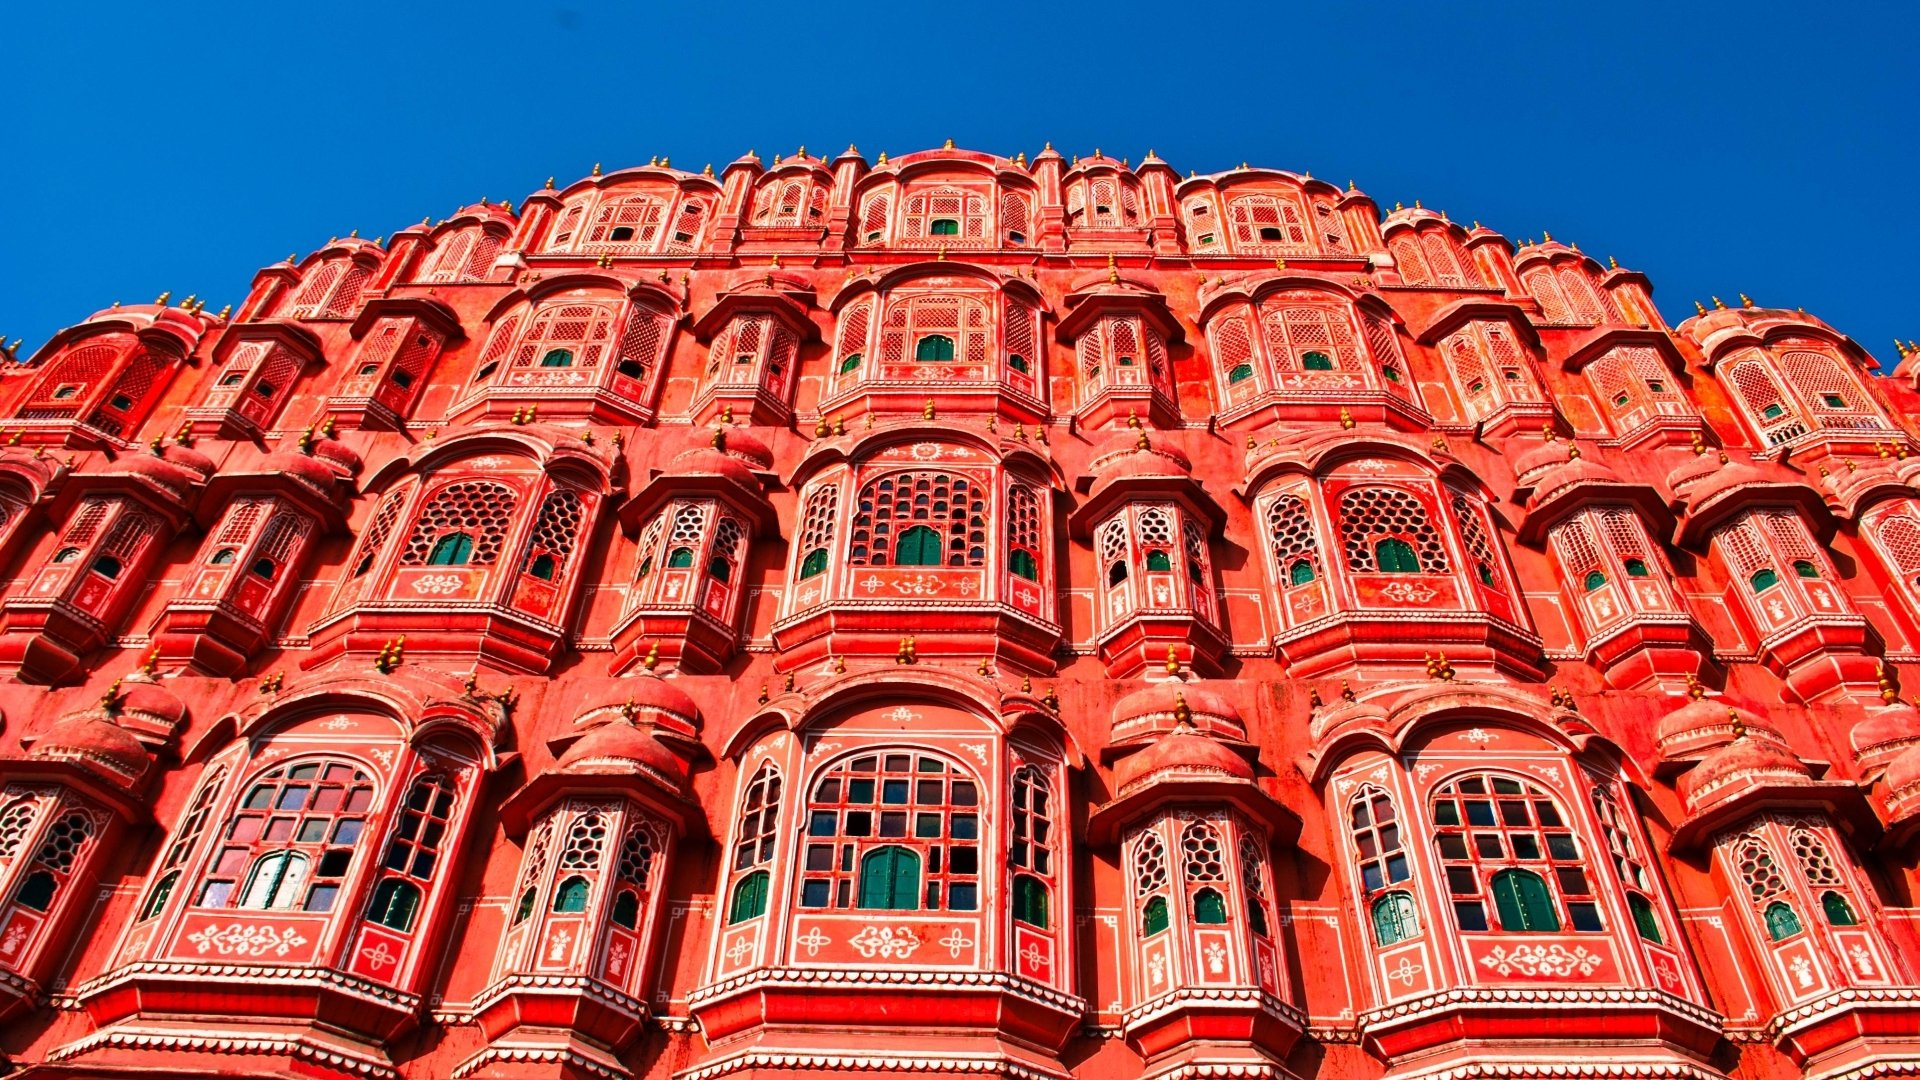 Indian Hd Backgrounds: Hawa Mahal Full HD Wallpaper And Background Image